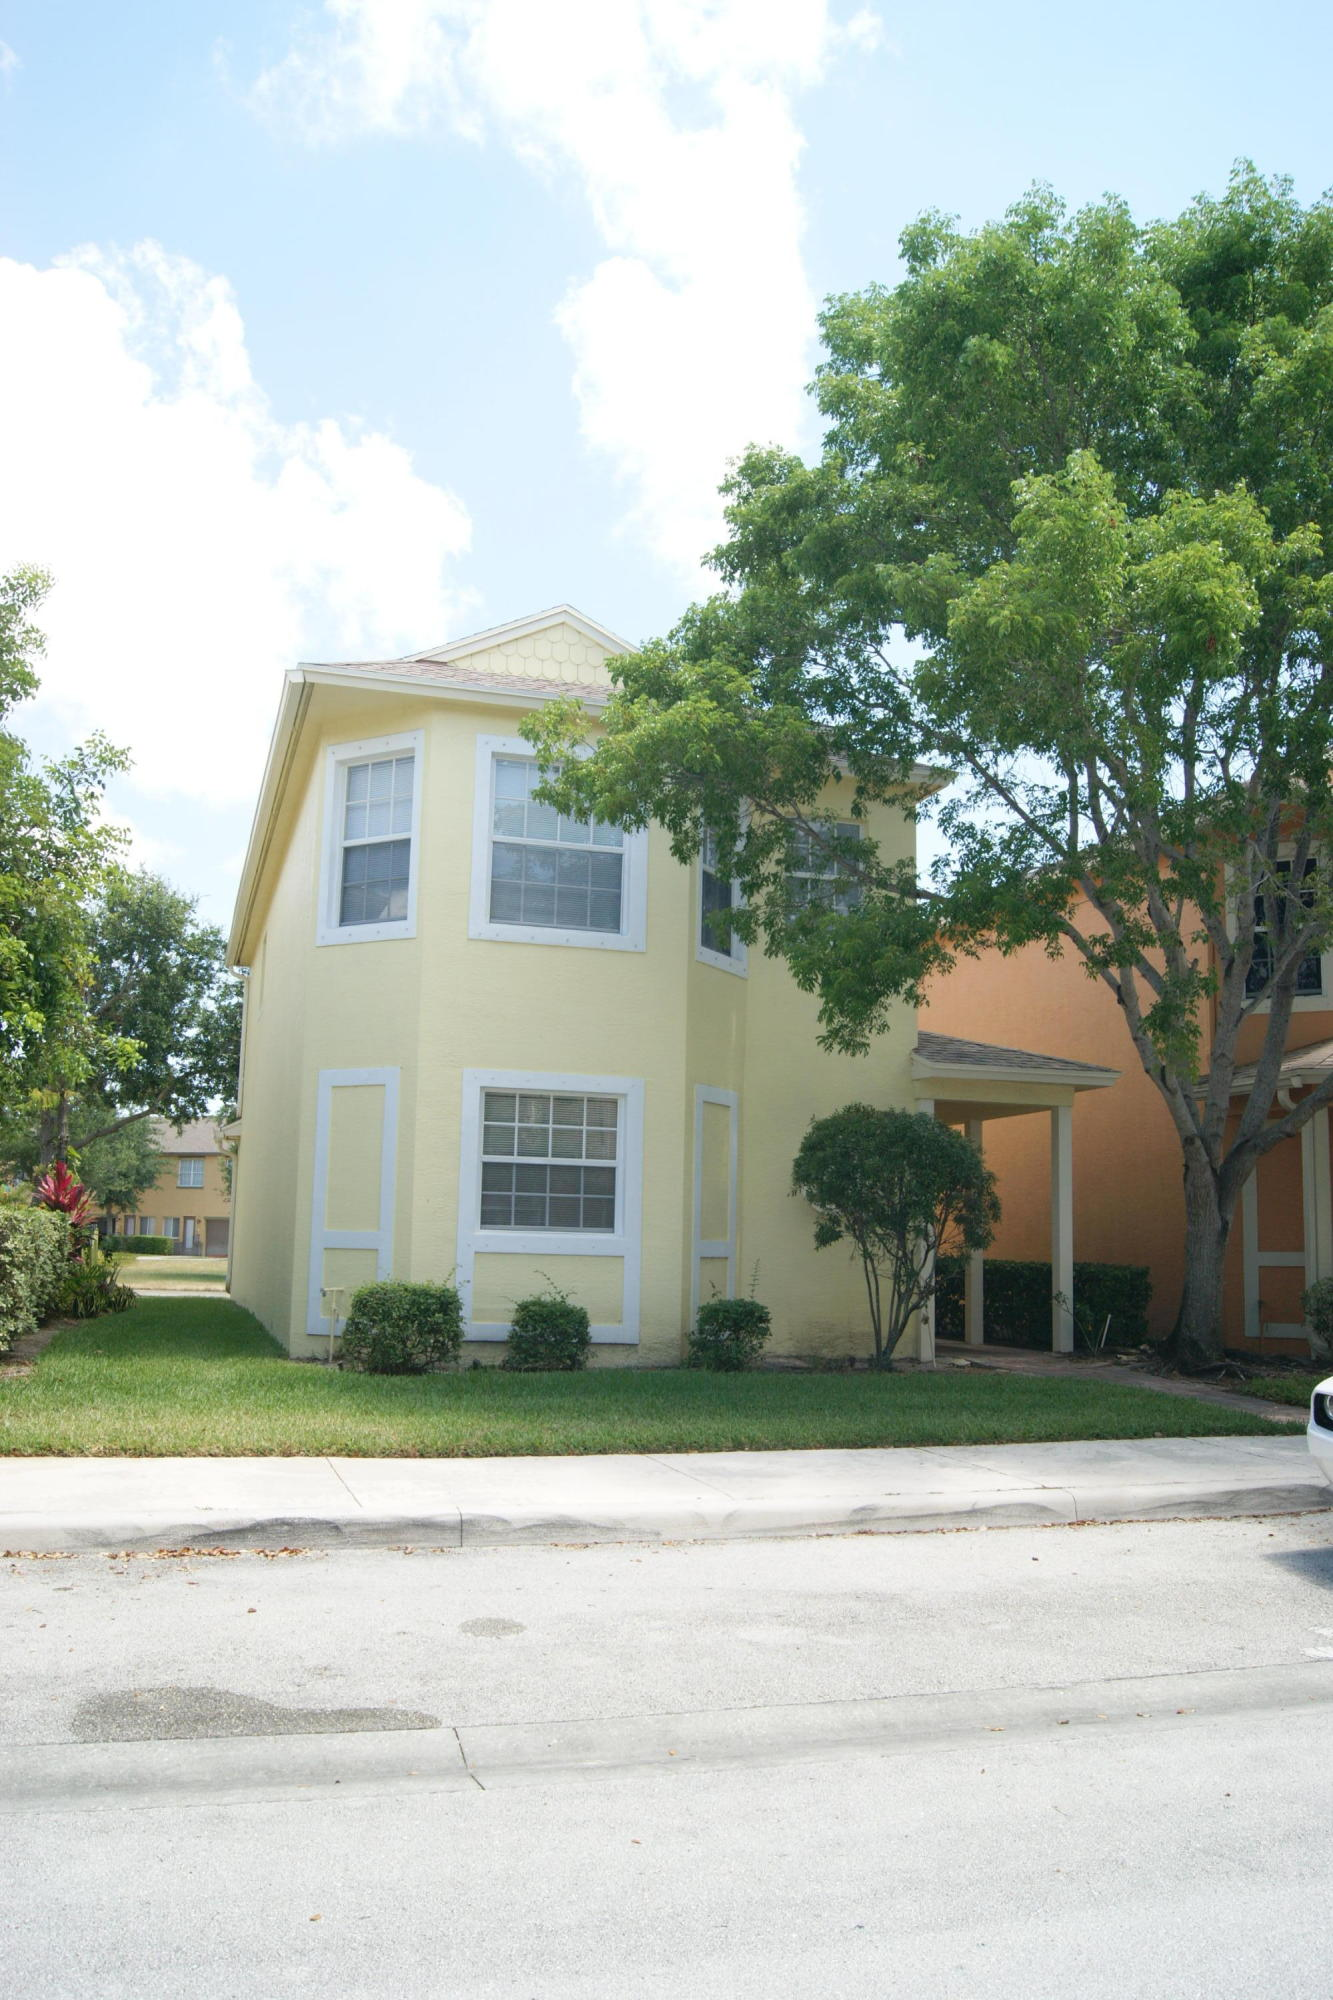 Residenza monofamiliare In affitto in 2073 SE Fern Park Drive, Port Saint Lucie, Florida ,34952